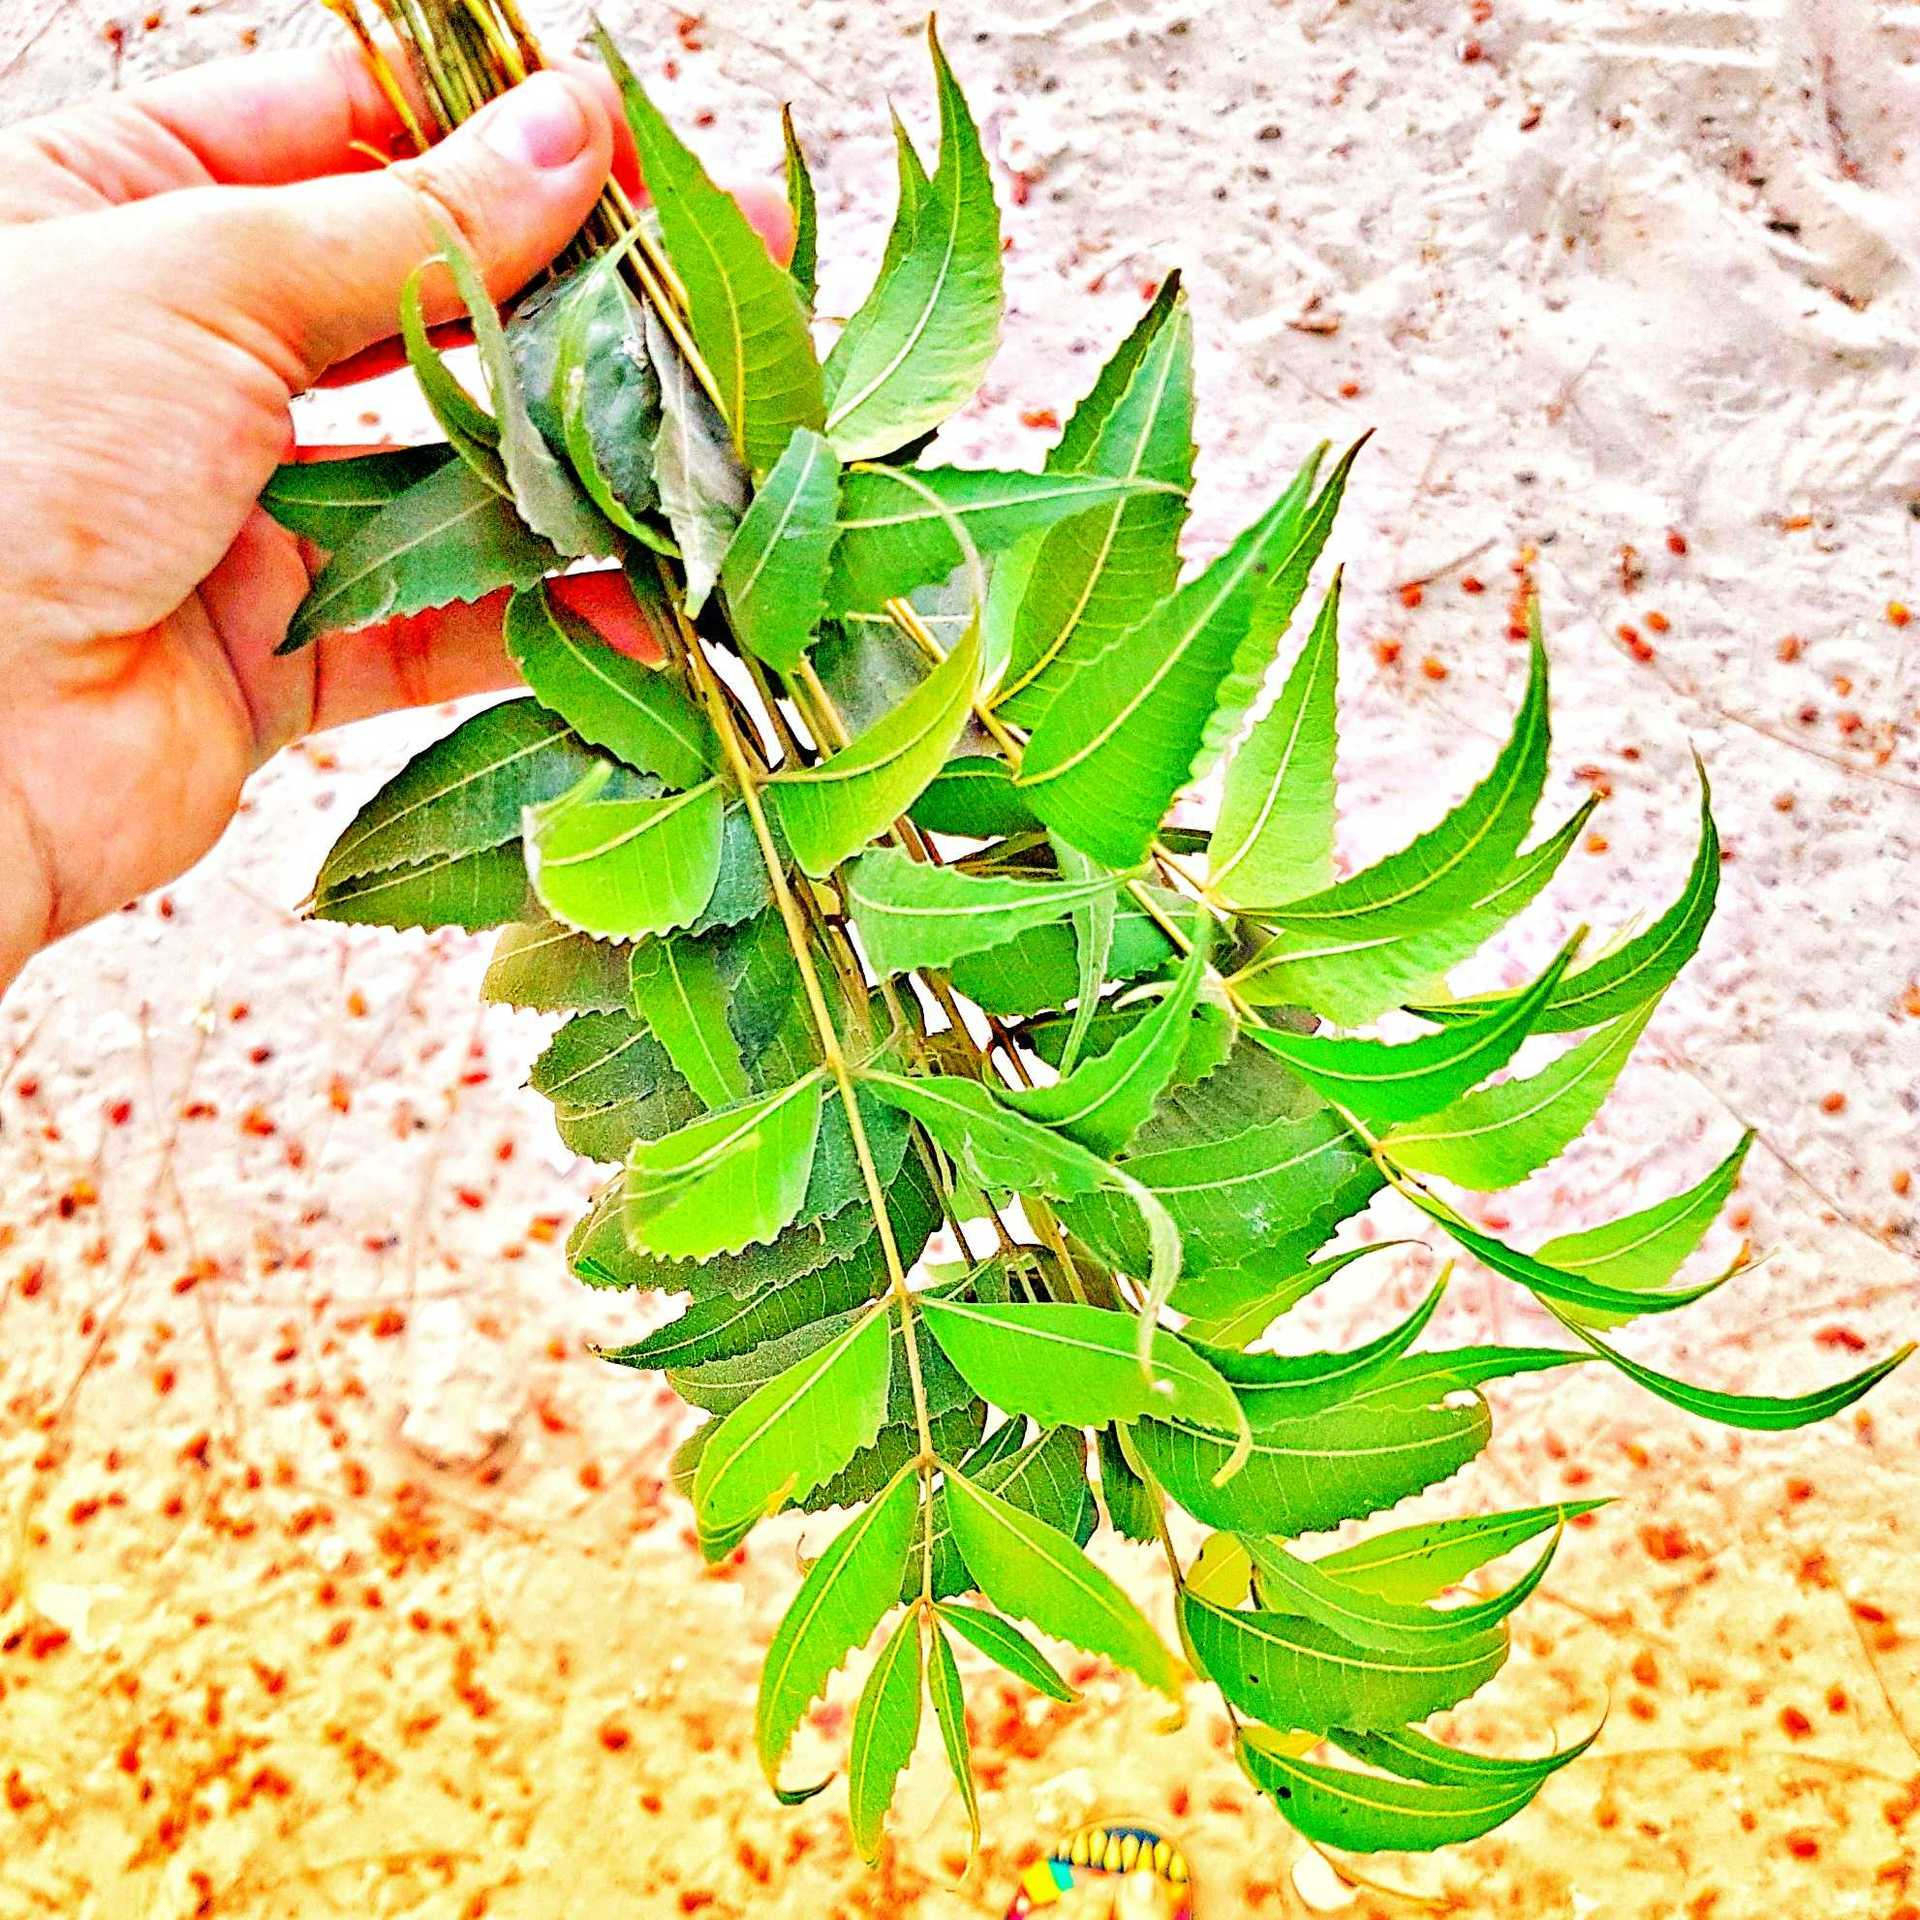 Neem for skin and hair